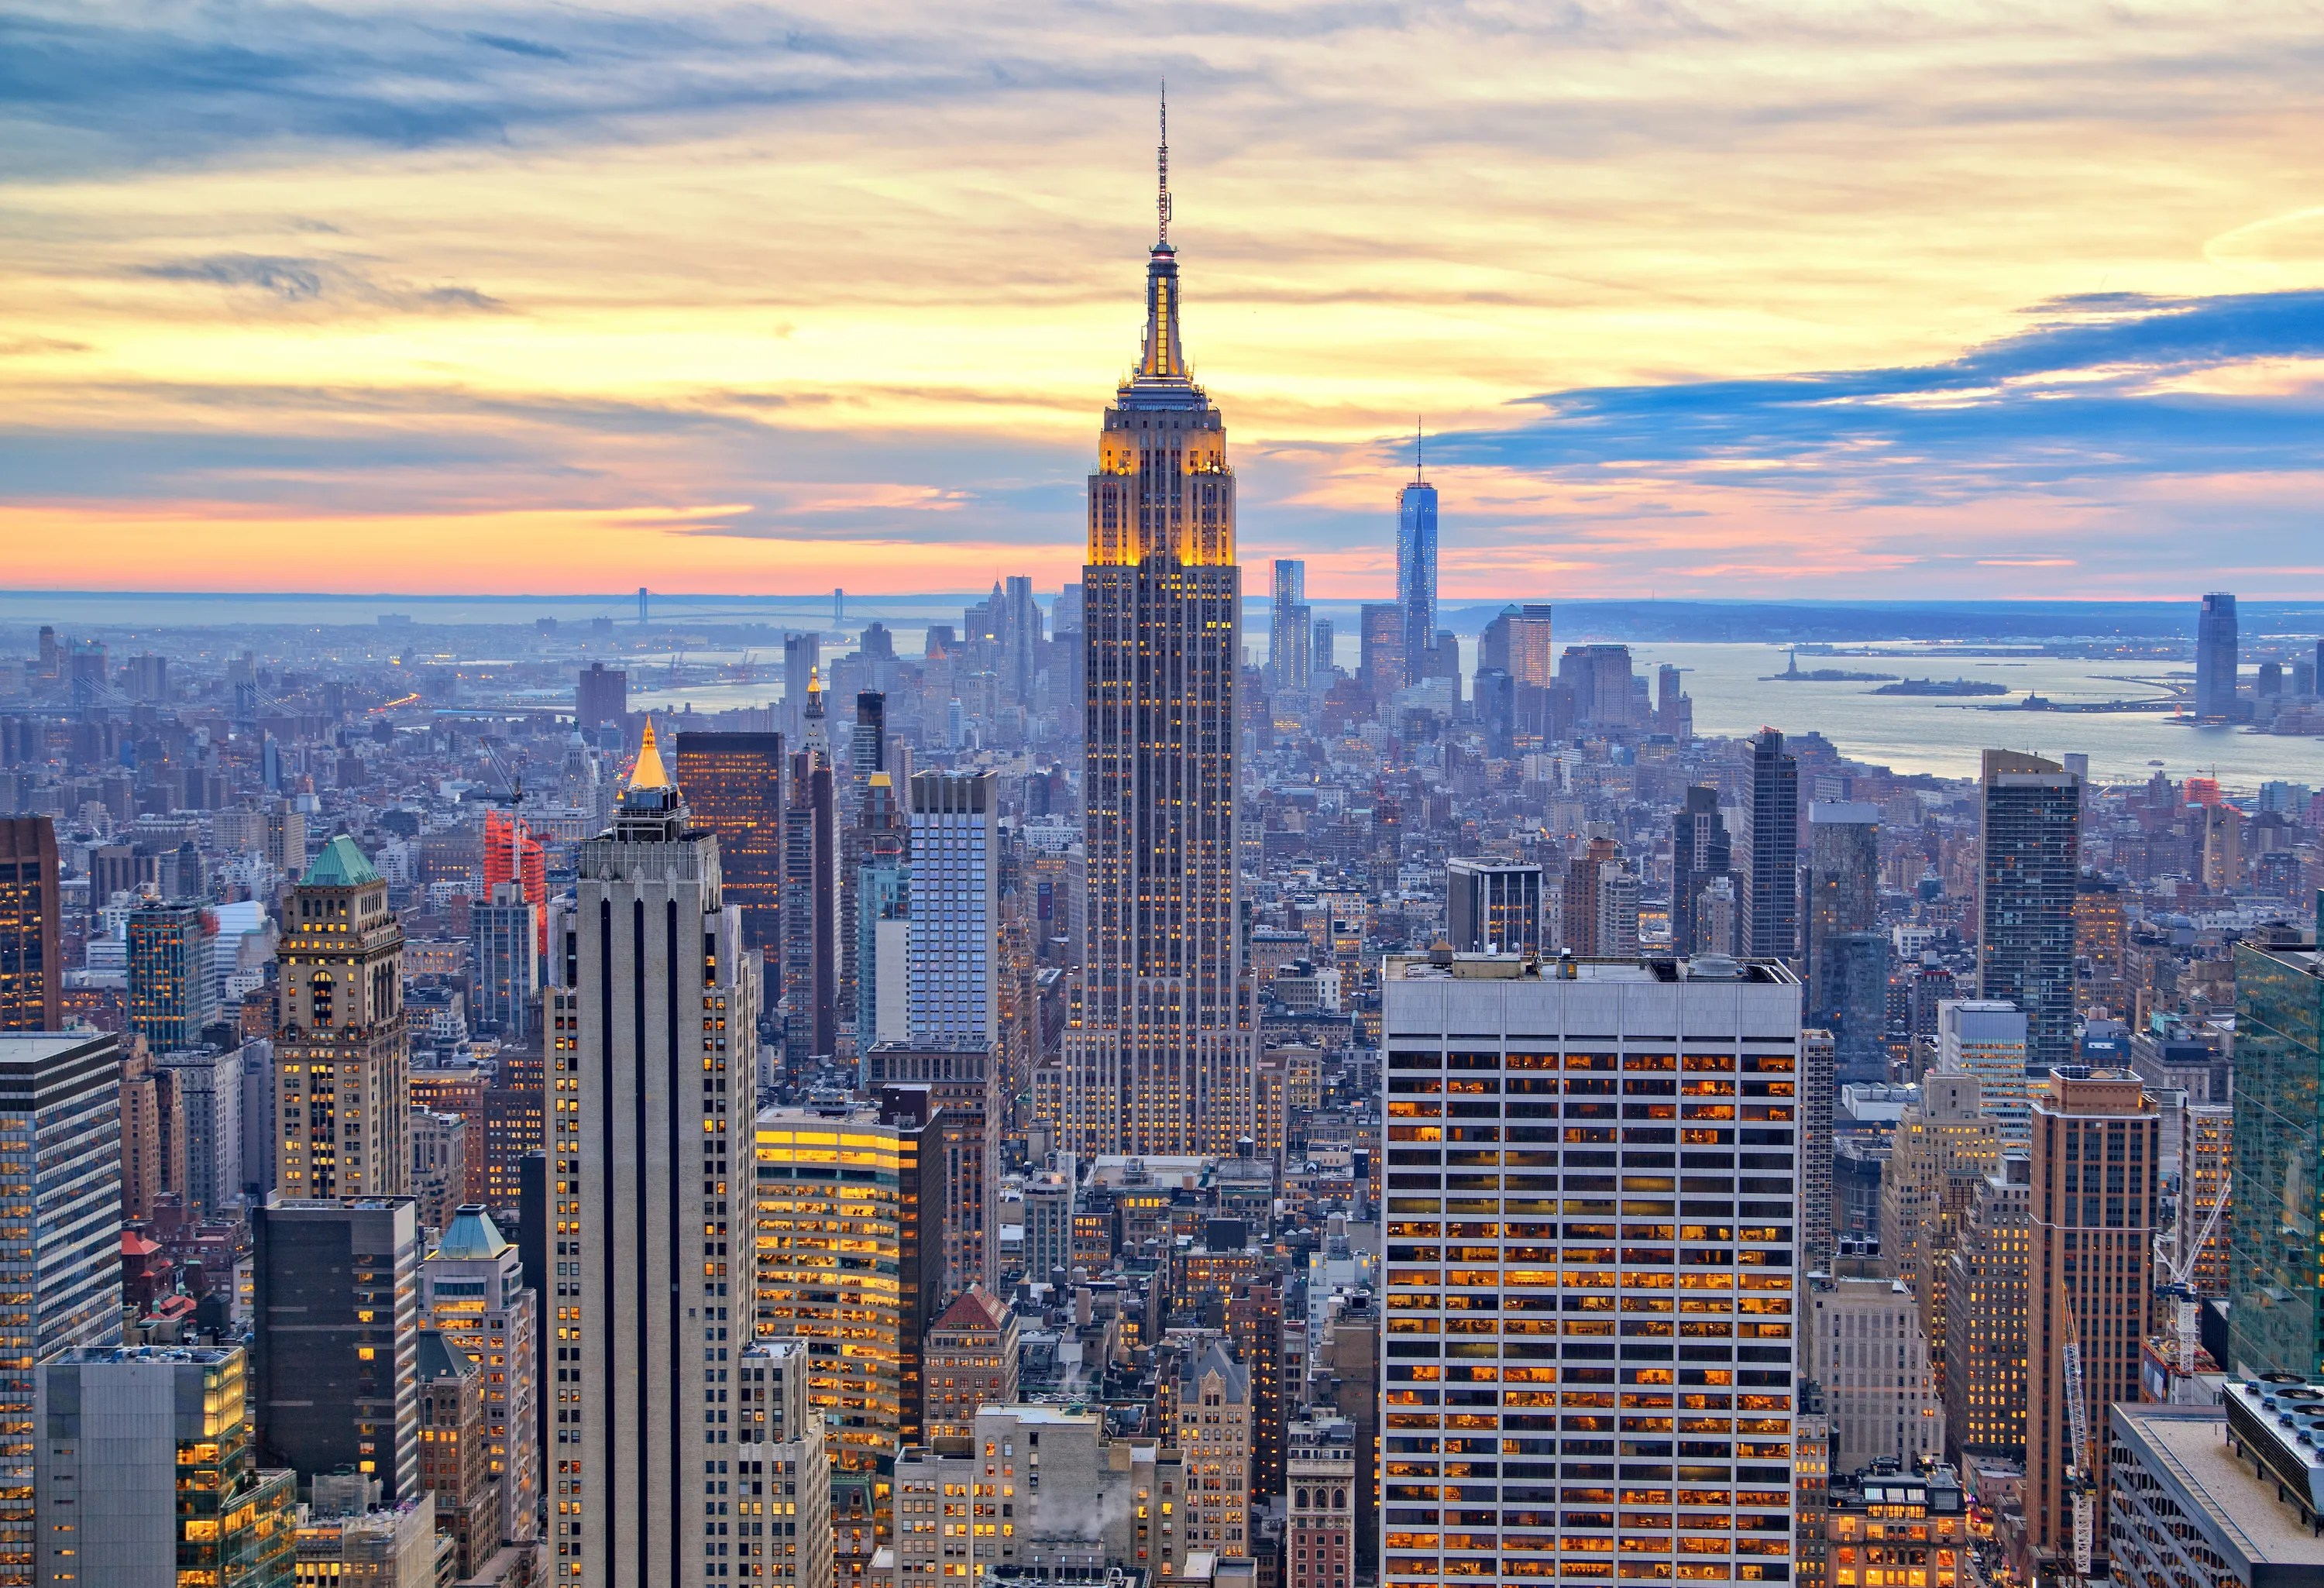 New York S Empire State Building Gets A Surprising Upgrade